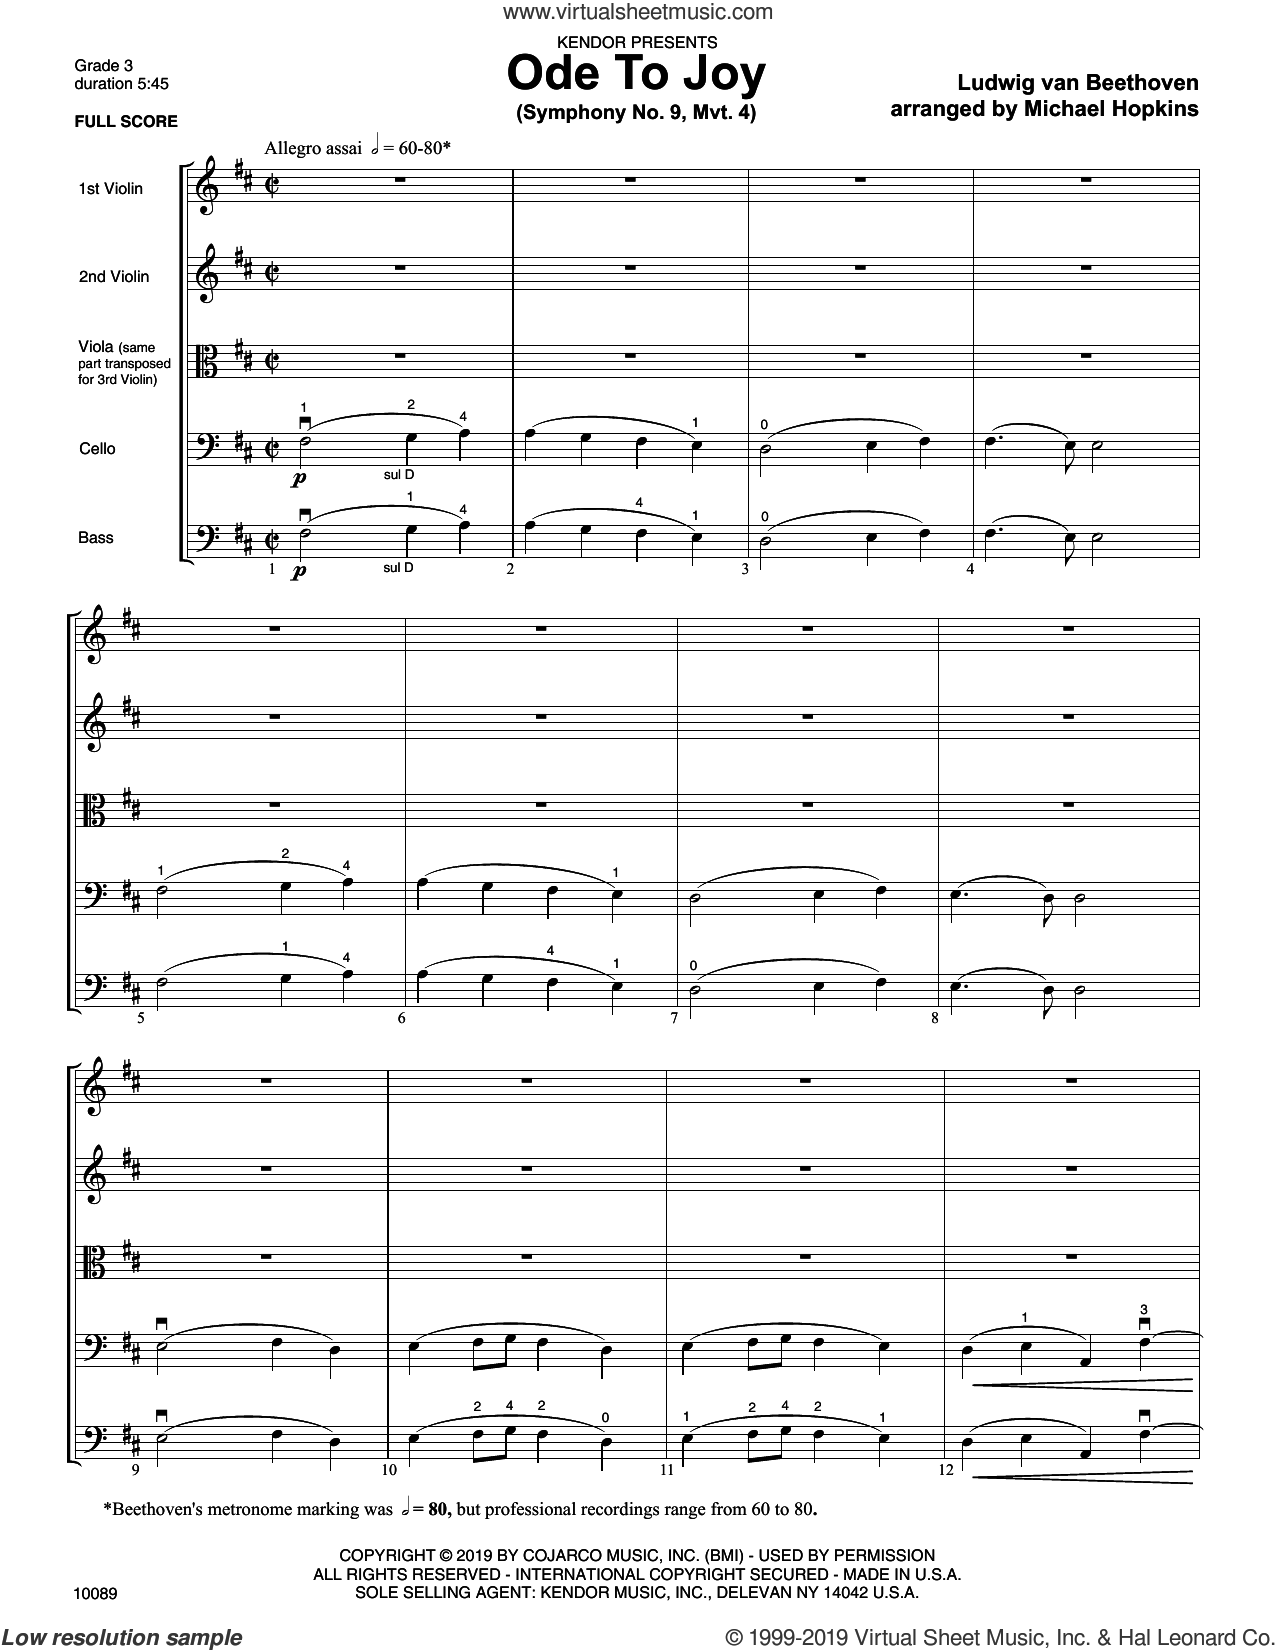 Ode To Joy (Symphony No. 9, Mvt. 4) (COMPLETE) sheet music for orchestra by Ludwig van Beethoven and Michael Hopkins, intermediate skill level